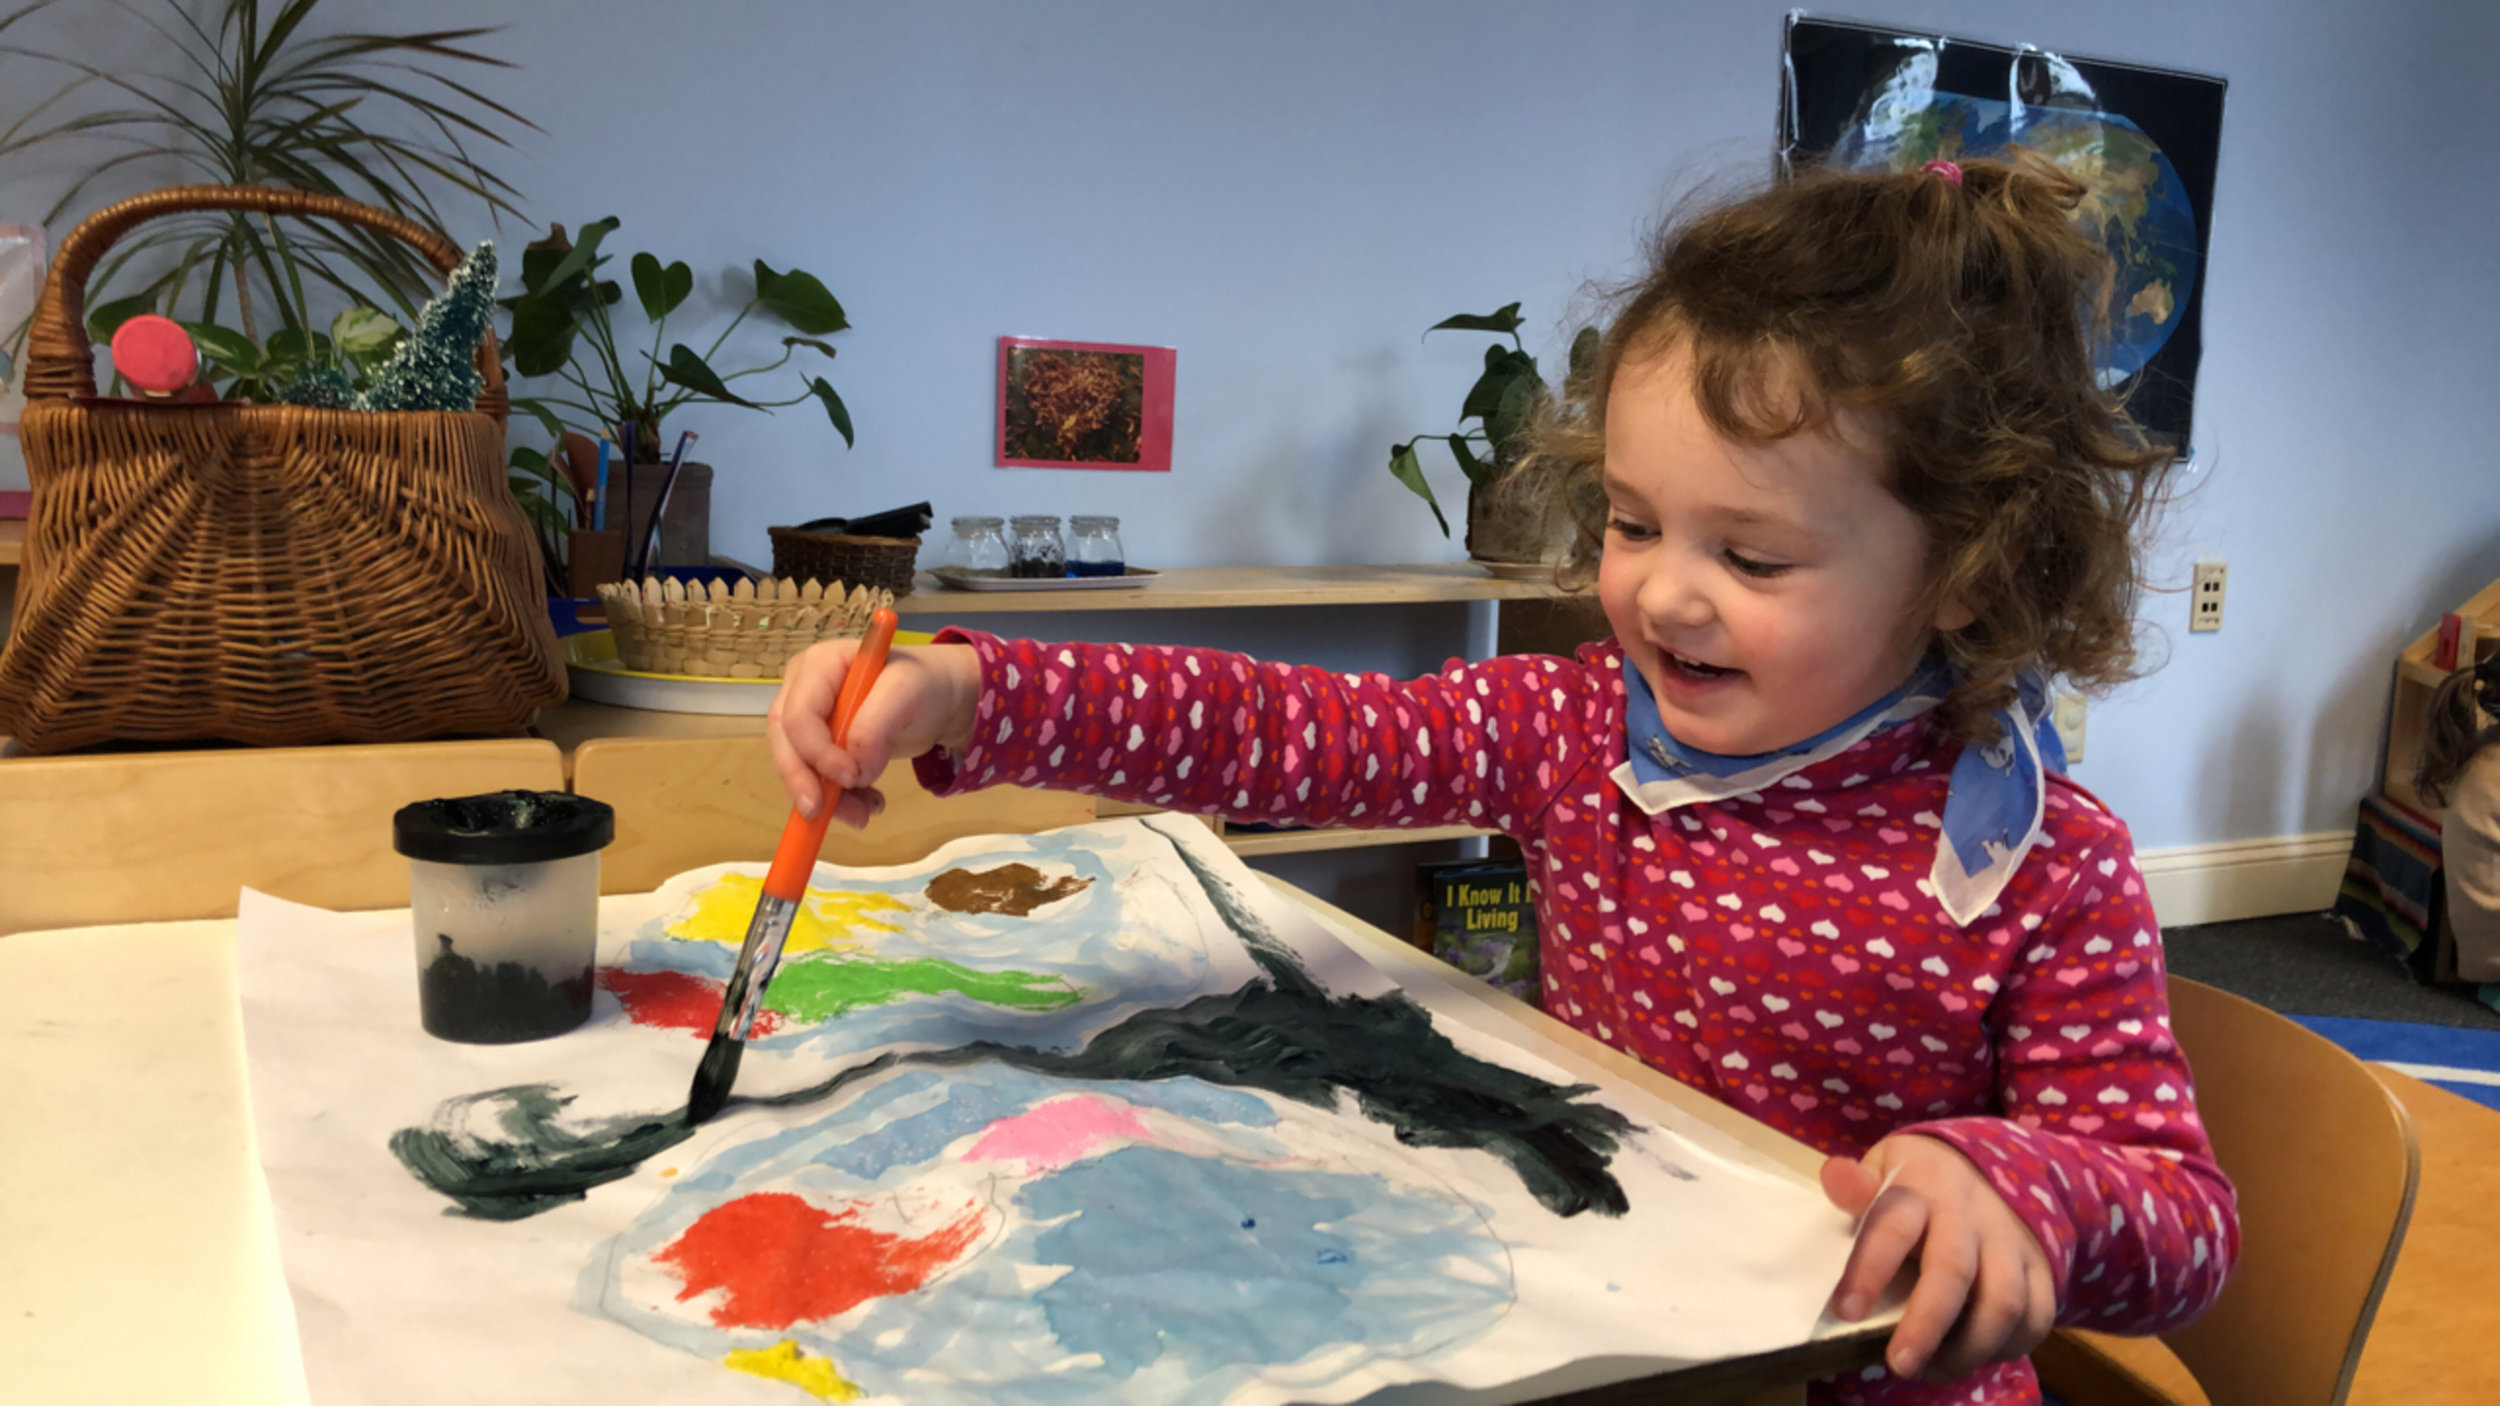 This four year old girl paints the outer space area of her continent map.